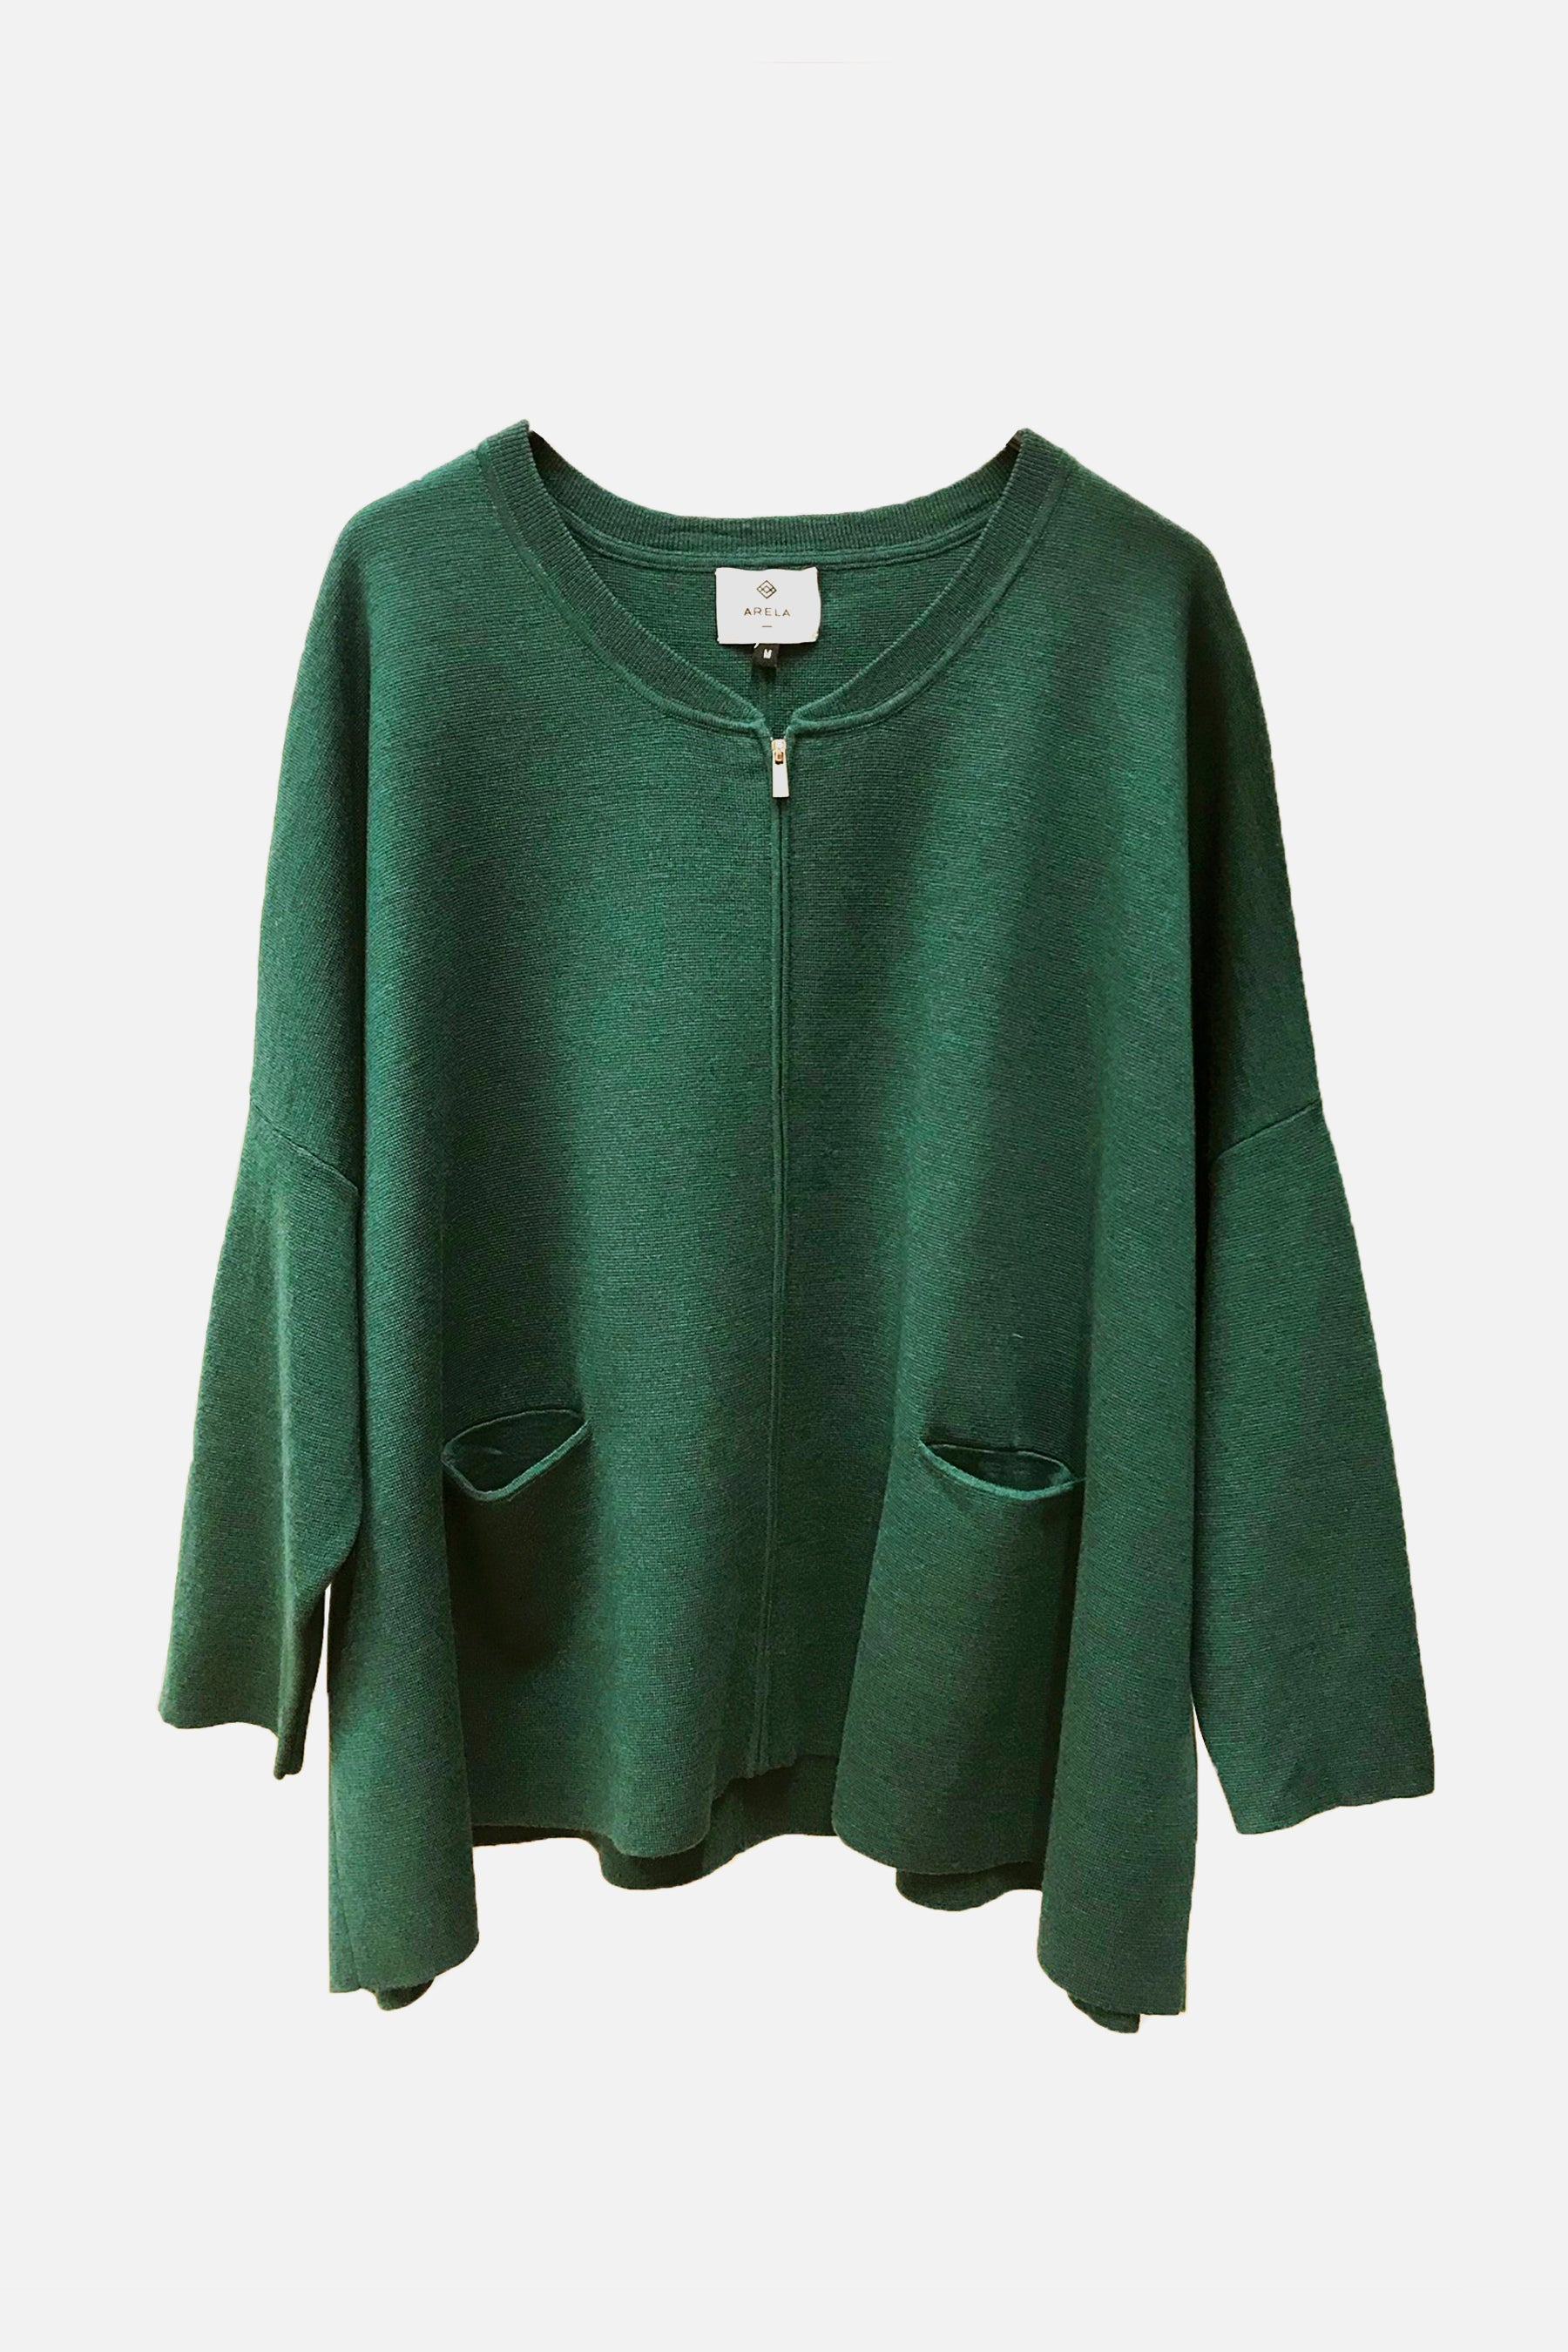 For Good: Green Cardigan, size M